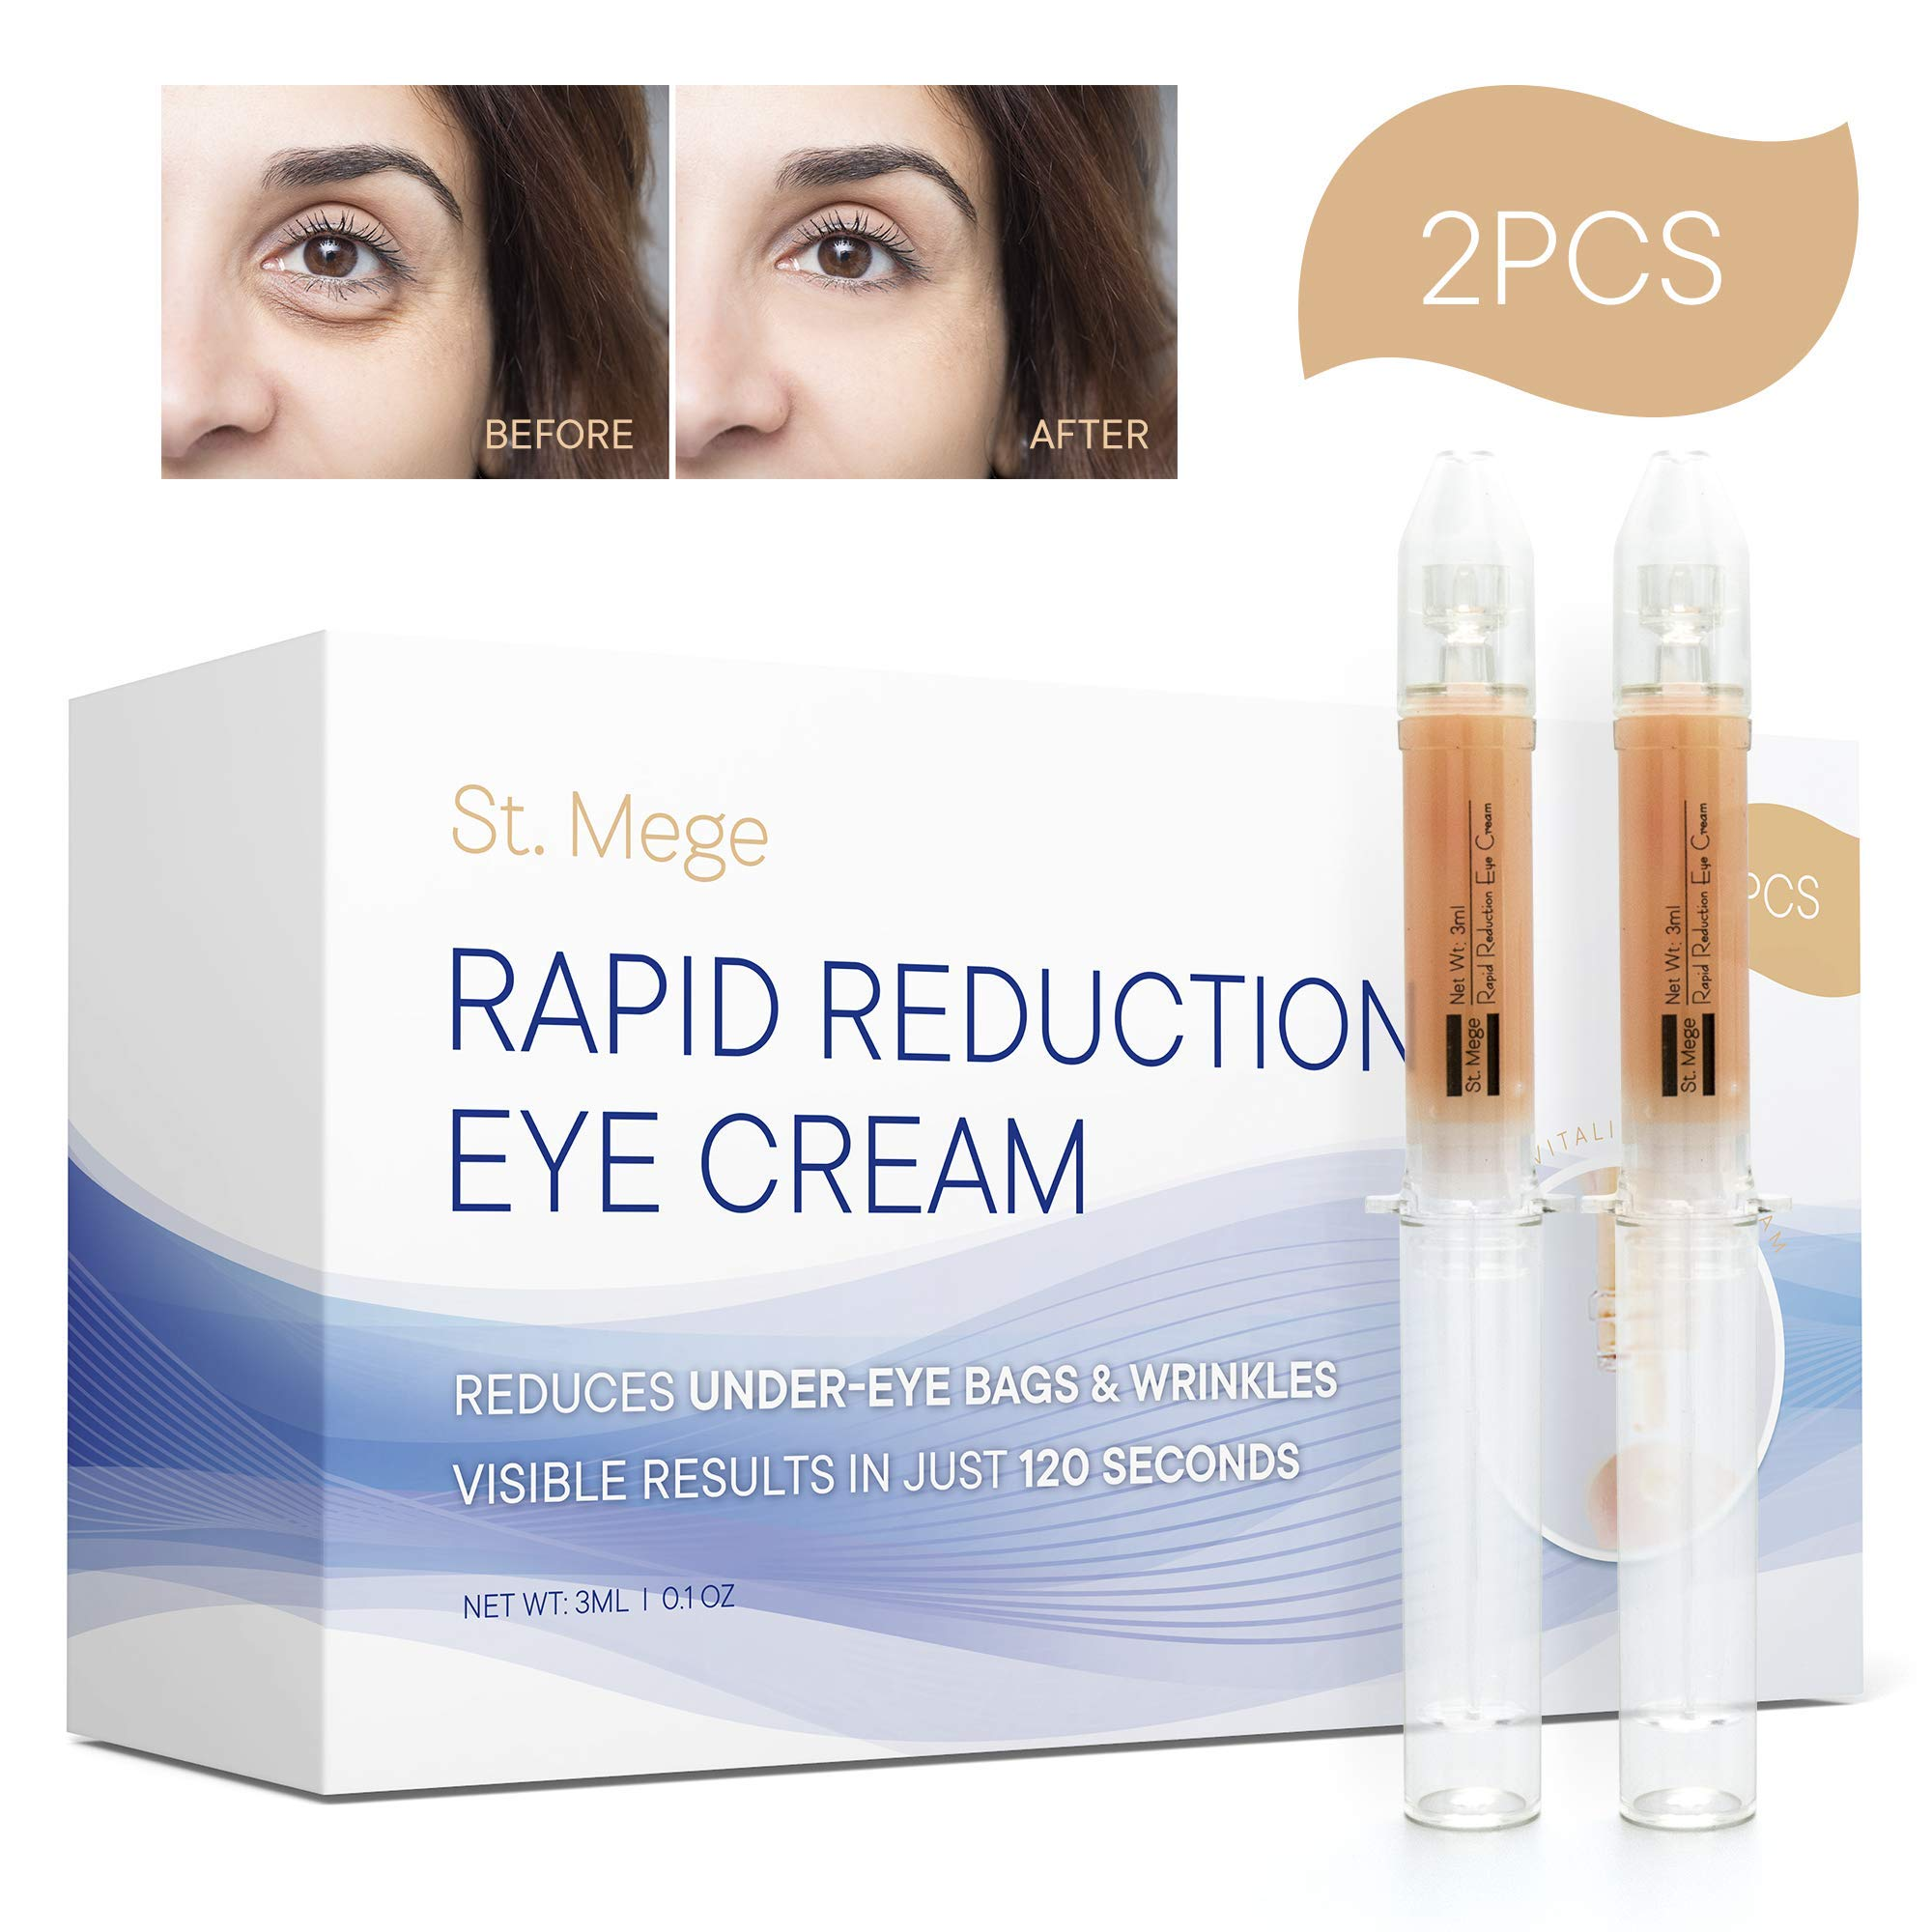 Rapid Reduction Eye Cream for Rapidly Reducing Bagginess, Puffiness, Dark Circles and Wrinkles in 120 Seconds by St. Mege 2Pcs by St. Mege